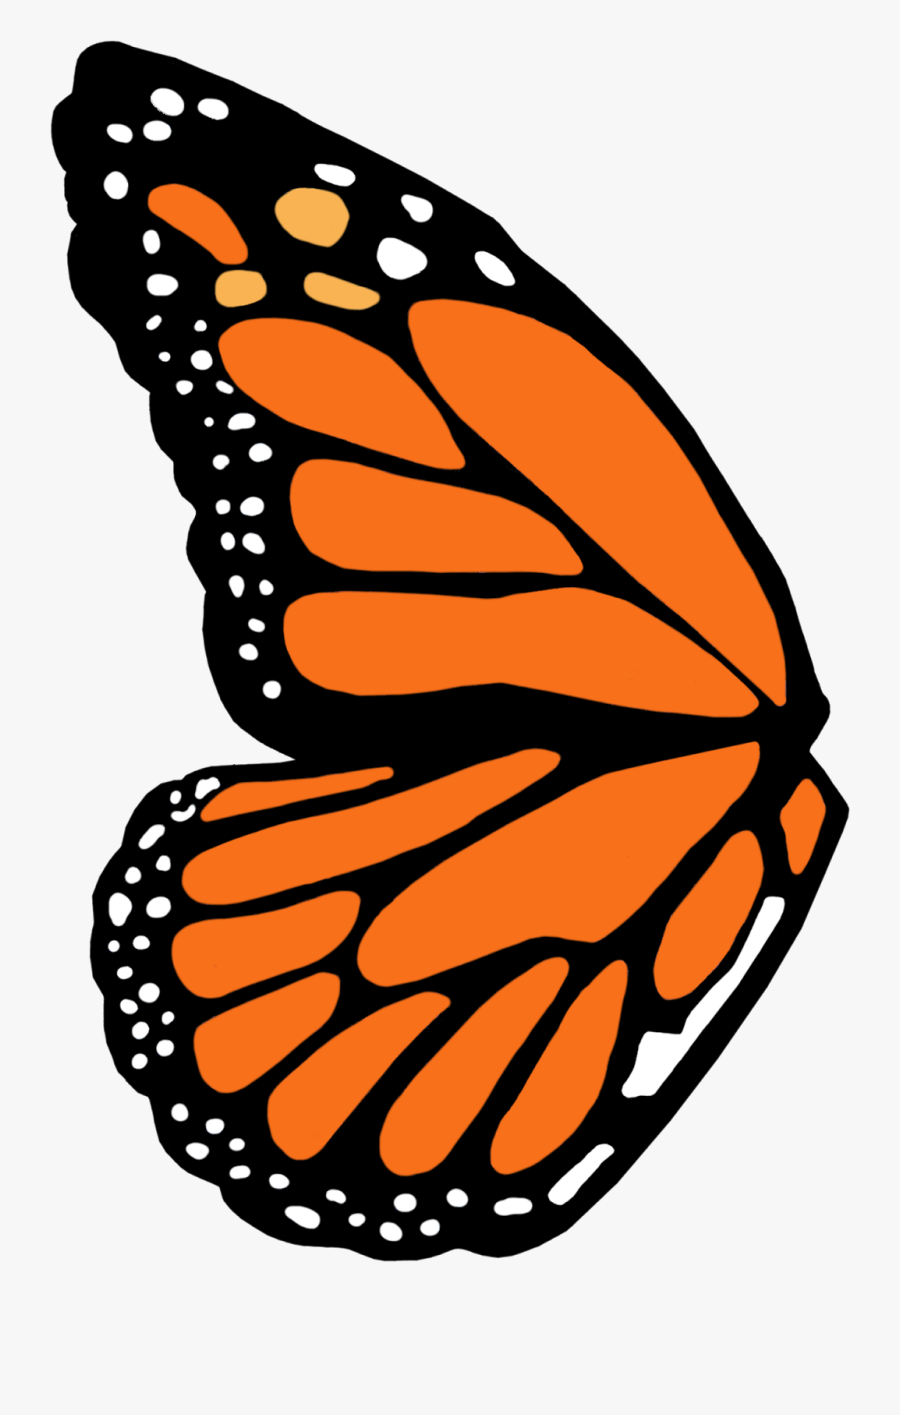 Monarch Butterfly Wing Template, Transparent Clipart